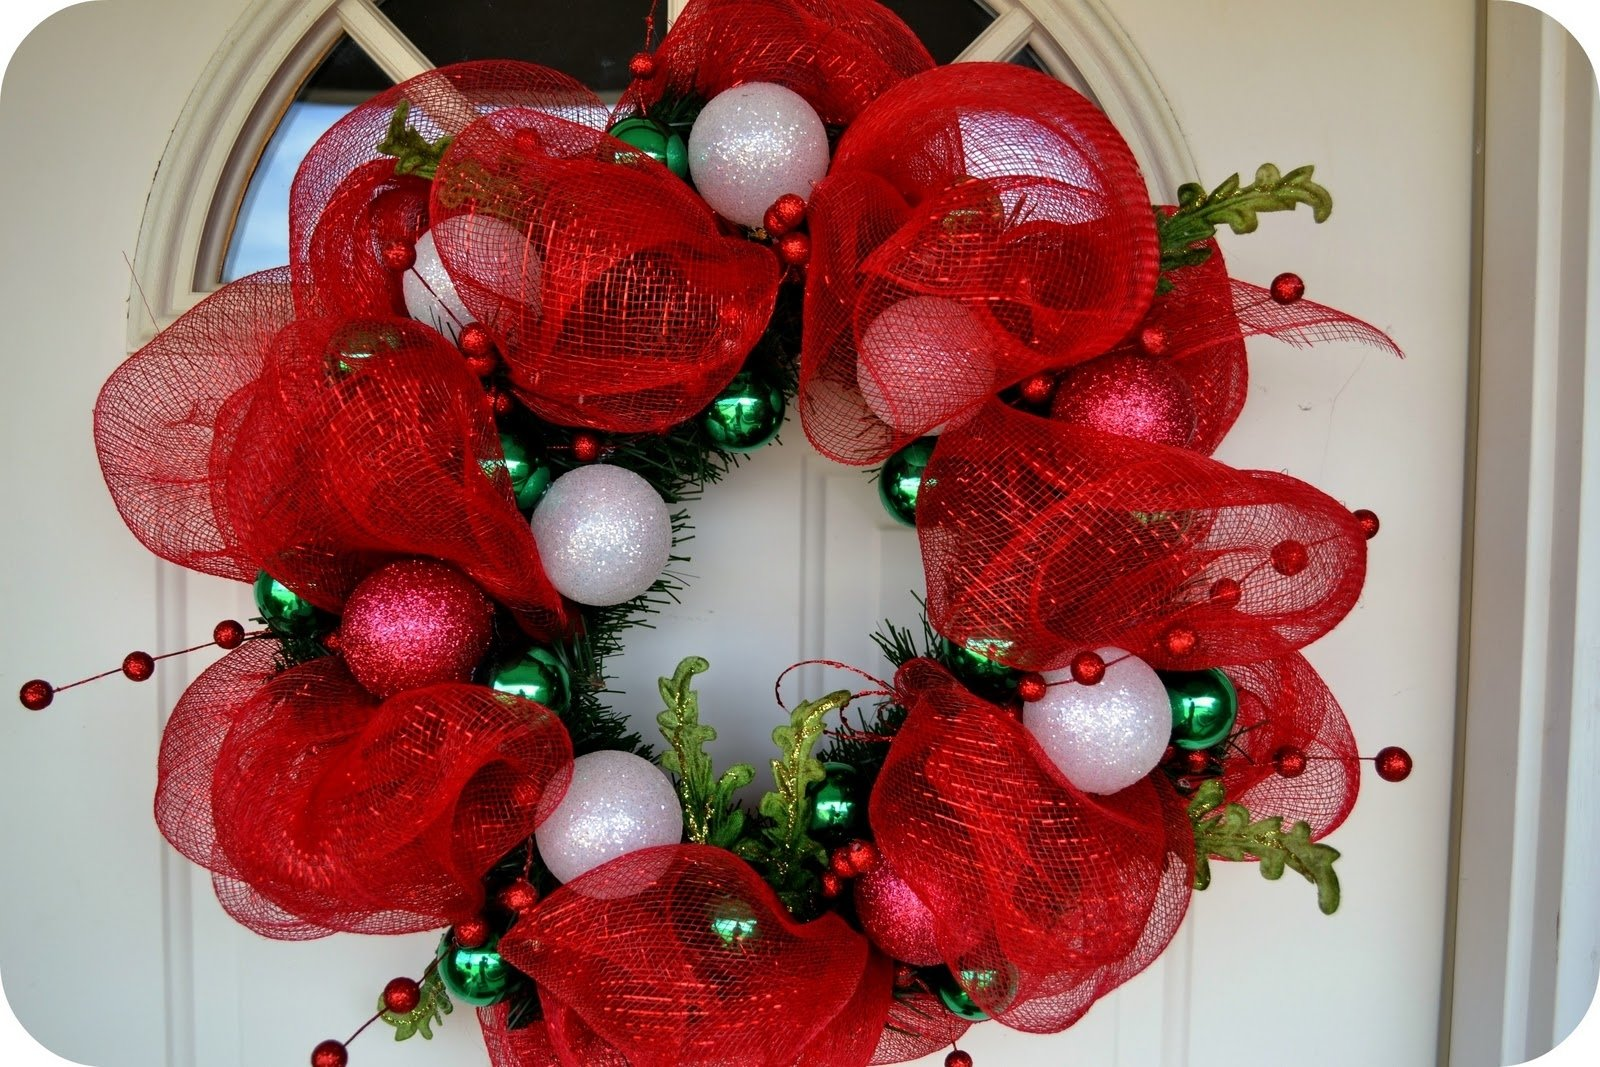 10 Ideal Deco Mesh Christmas Wreath Ideas the sparacino chronicles christmas deco mesh wreath tutorial 1 2020